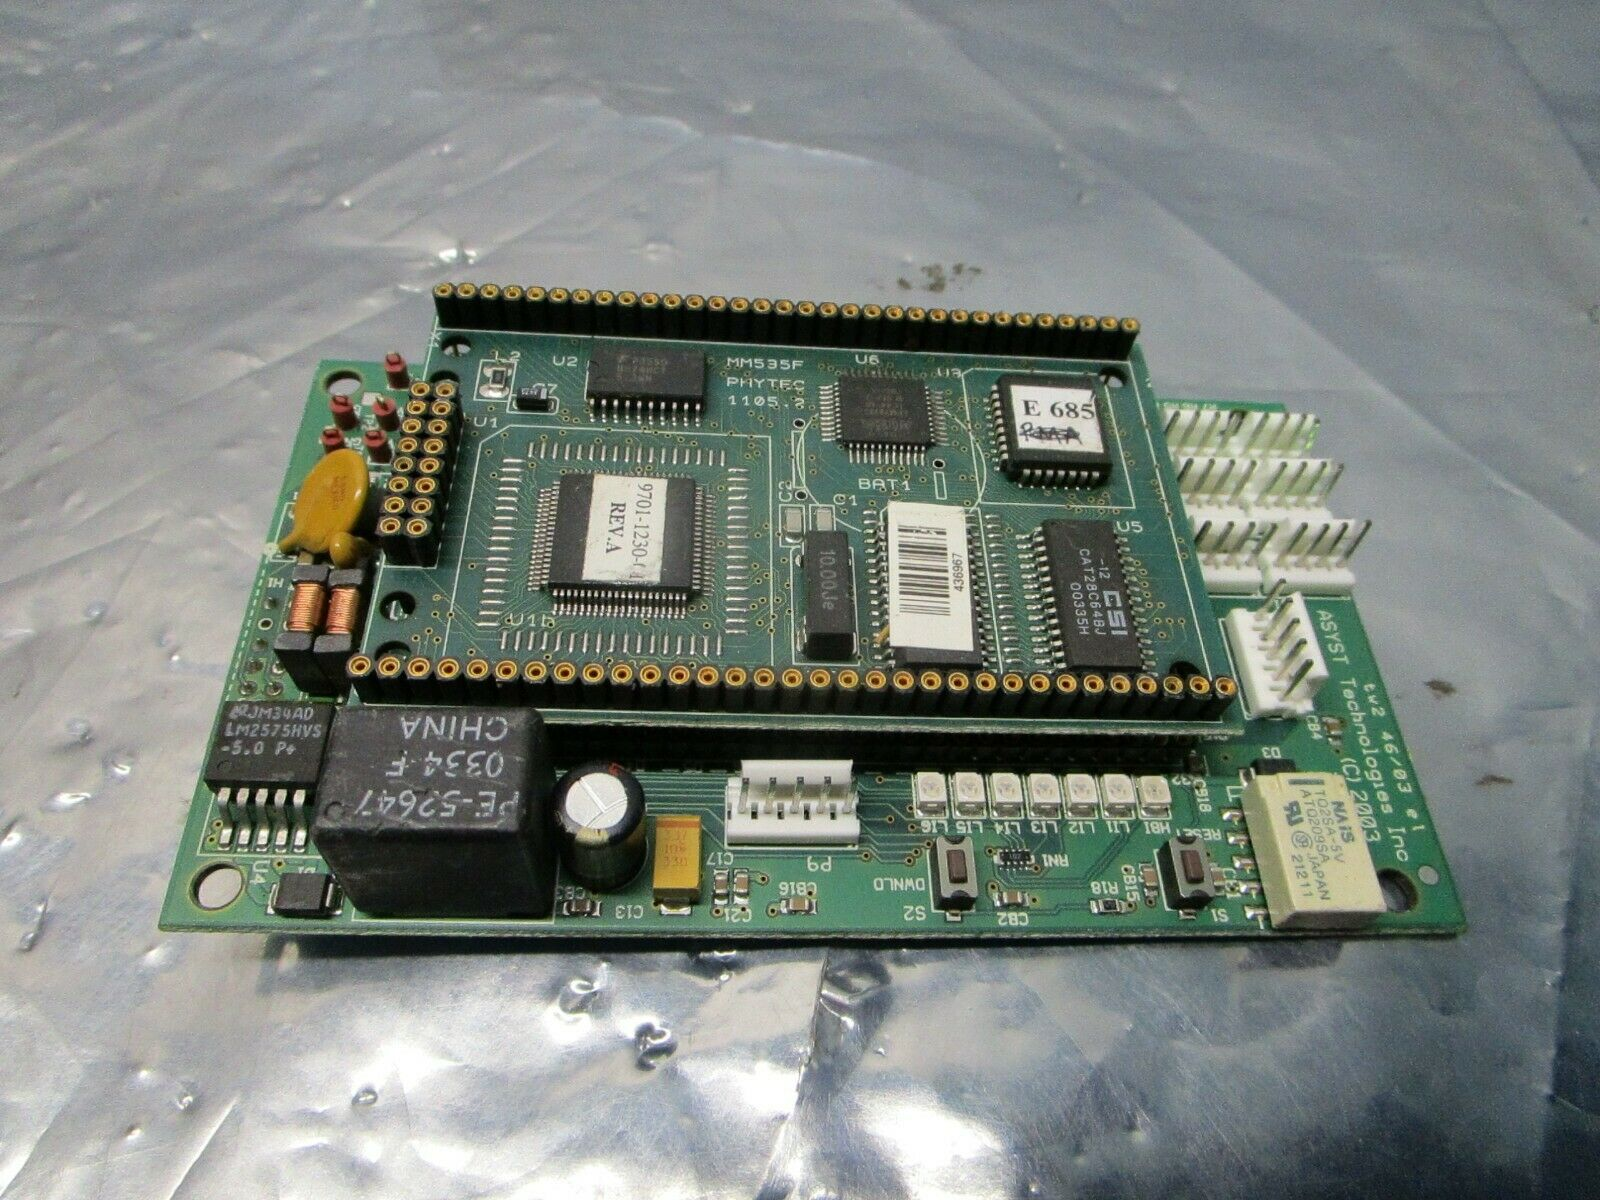 Asyst 3200-1198-01 PCB w/ MM535F PHYTEC 1105.2 Daughter Board, 101217